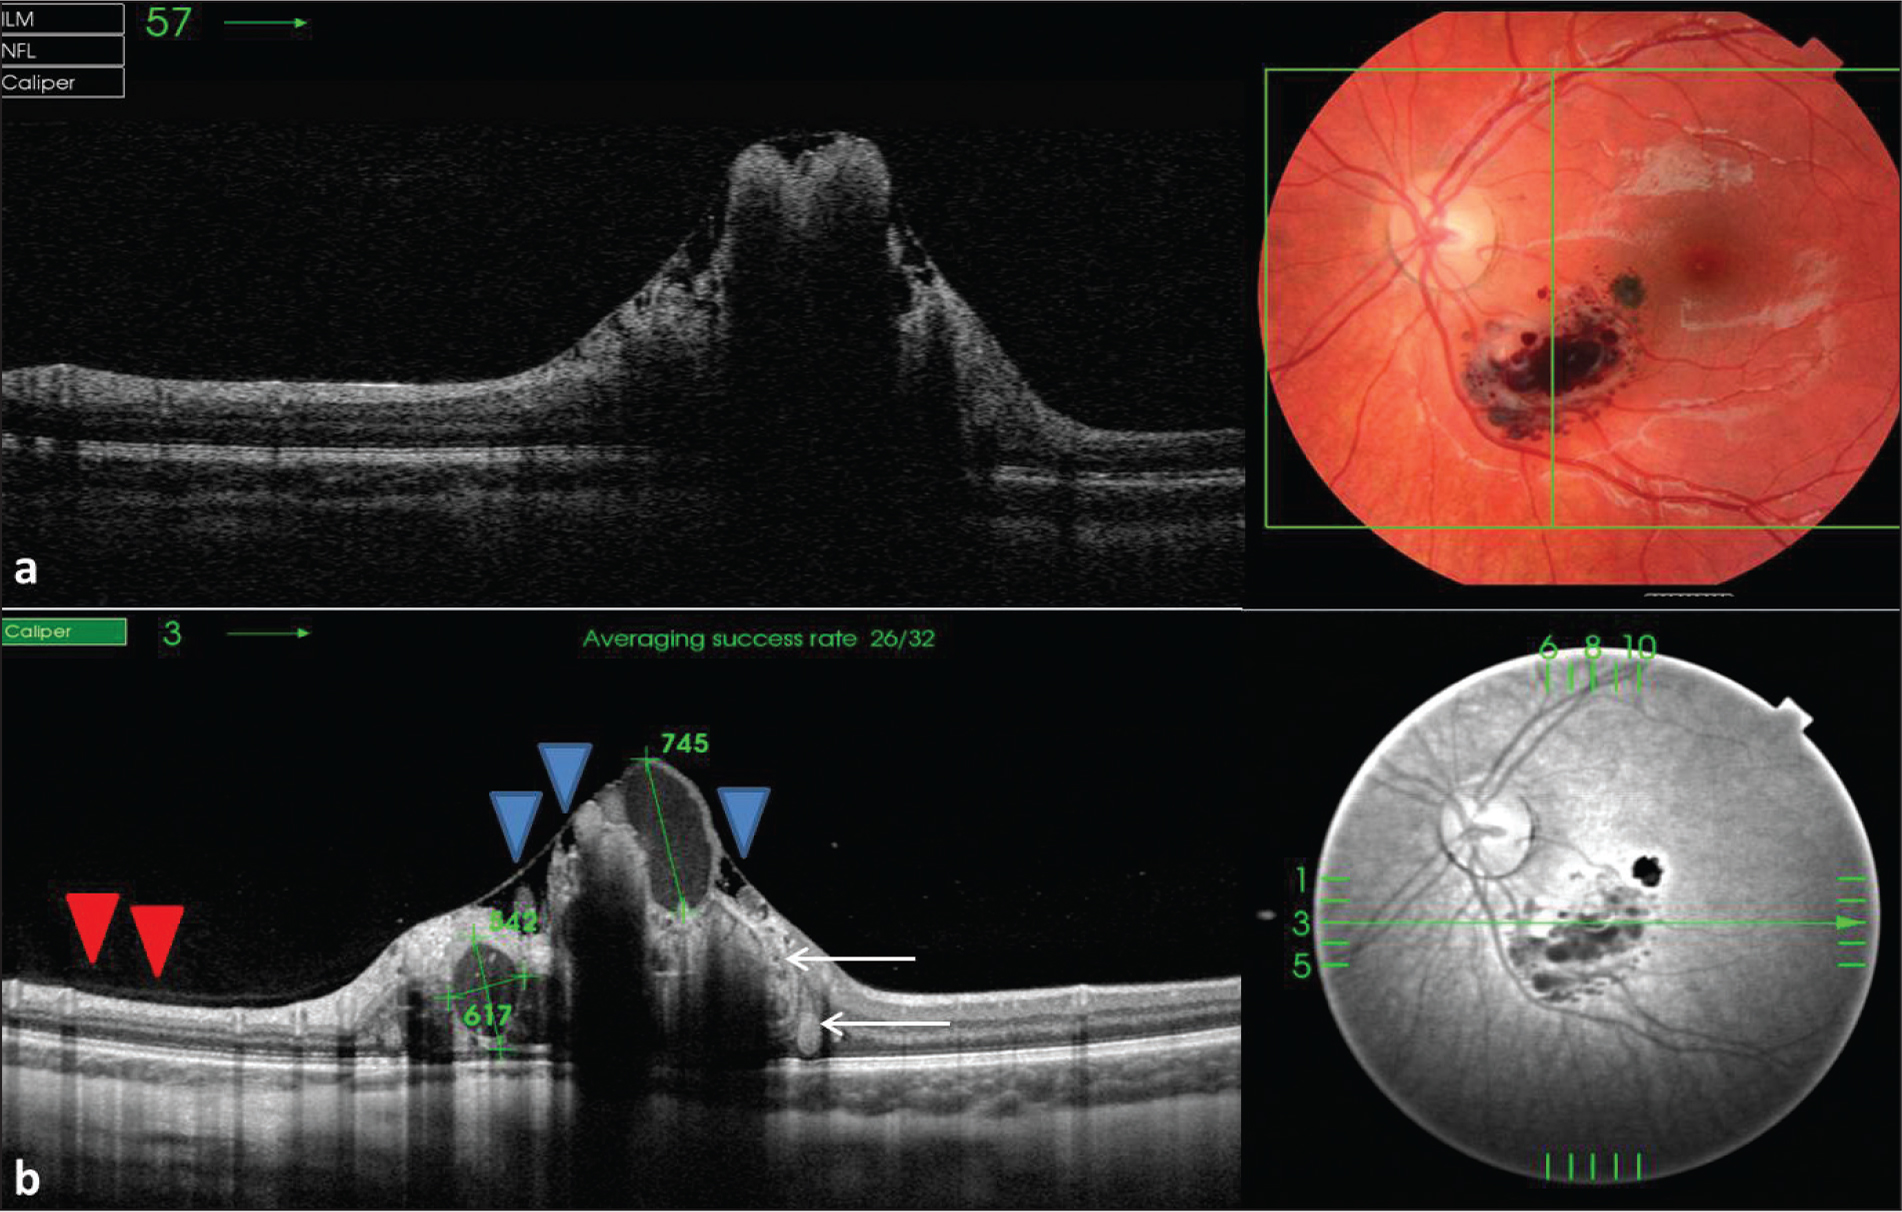 Fourier-domain optical coherence tomography showed an intraretinal lesion with cystic-like internal appearance. (A) Significant optical shadowing was present, preventing the visualization of any subretinal component to the lesion. (B) The 12-mm long 5-raster line cross pattern (5 lines vertical and 5 lines horizontal) default setting was used in a vitreous focal mode and centered on the fovea. The spacing between the top and the bottom line of the 5-line cross pattern was set at 1.5 mm. The scans showed thickened retina with optically clear intraretinal saccular structures and saccular structures with content of medium reflectivity observed as hemorrhage on fundus biomicroscopy, color photography, and fluorescein angiography (white arrows) and were compatible with the saccular aneurysms. Overlying preretinal tissue can be observed forming bridges between the saccules (blue arrows). Swept-source optical coherence tomography scans also showed the hyaloidal membrane attached to the posterior pole (red arrows), and the bursa premacularis (green arrows).